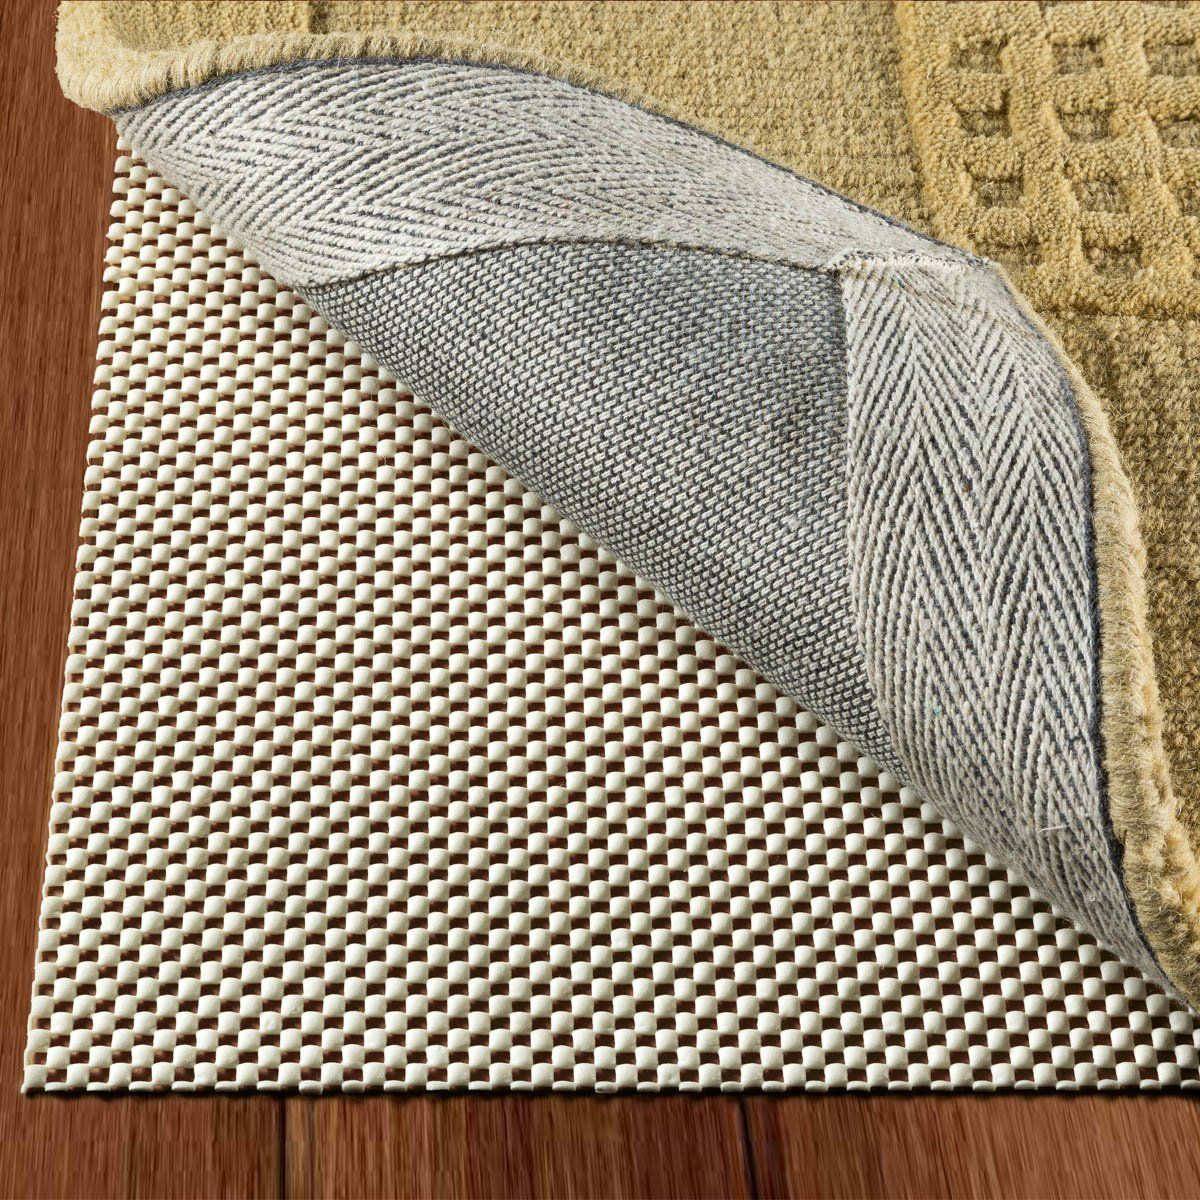 Non Slip Rug Pad Size 2 For Runner Rugs On Hardwood Floors Extra Strong Grip Thick Padding And